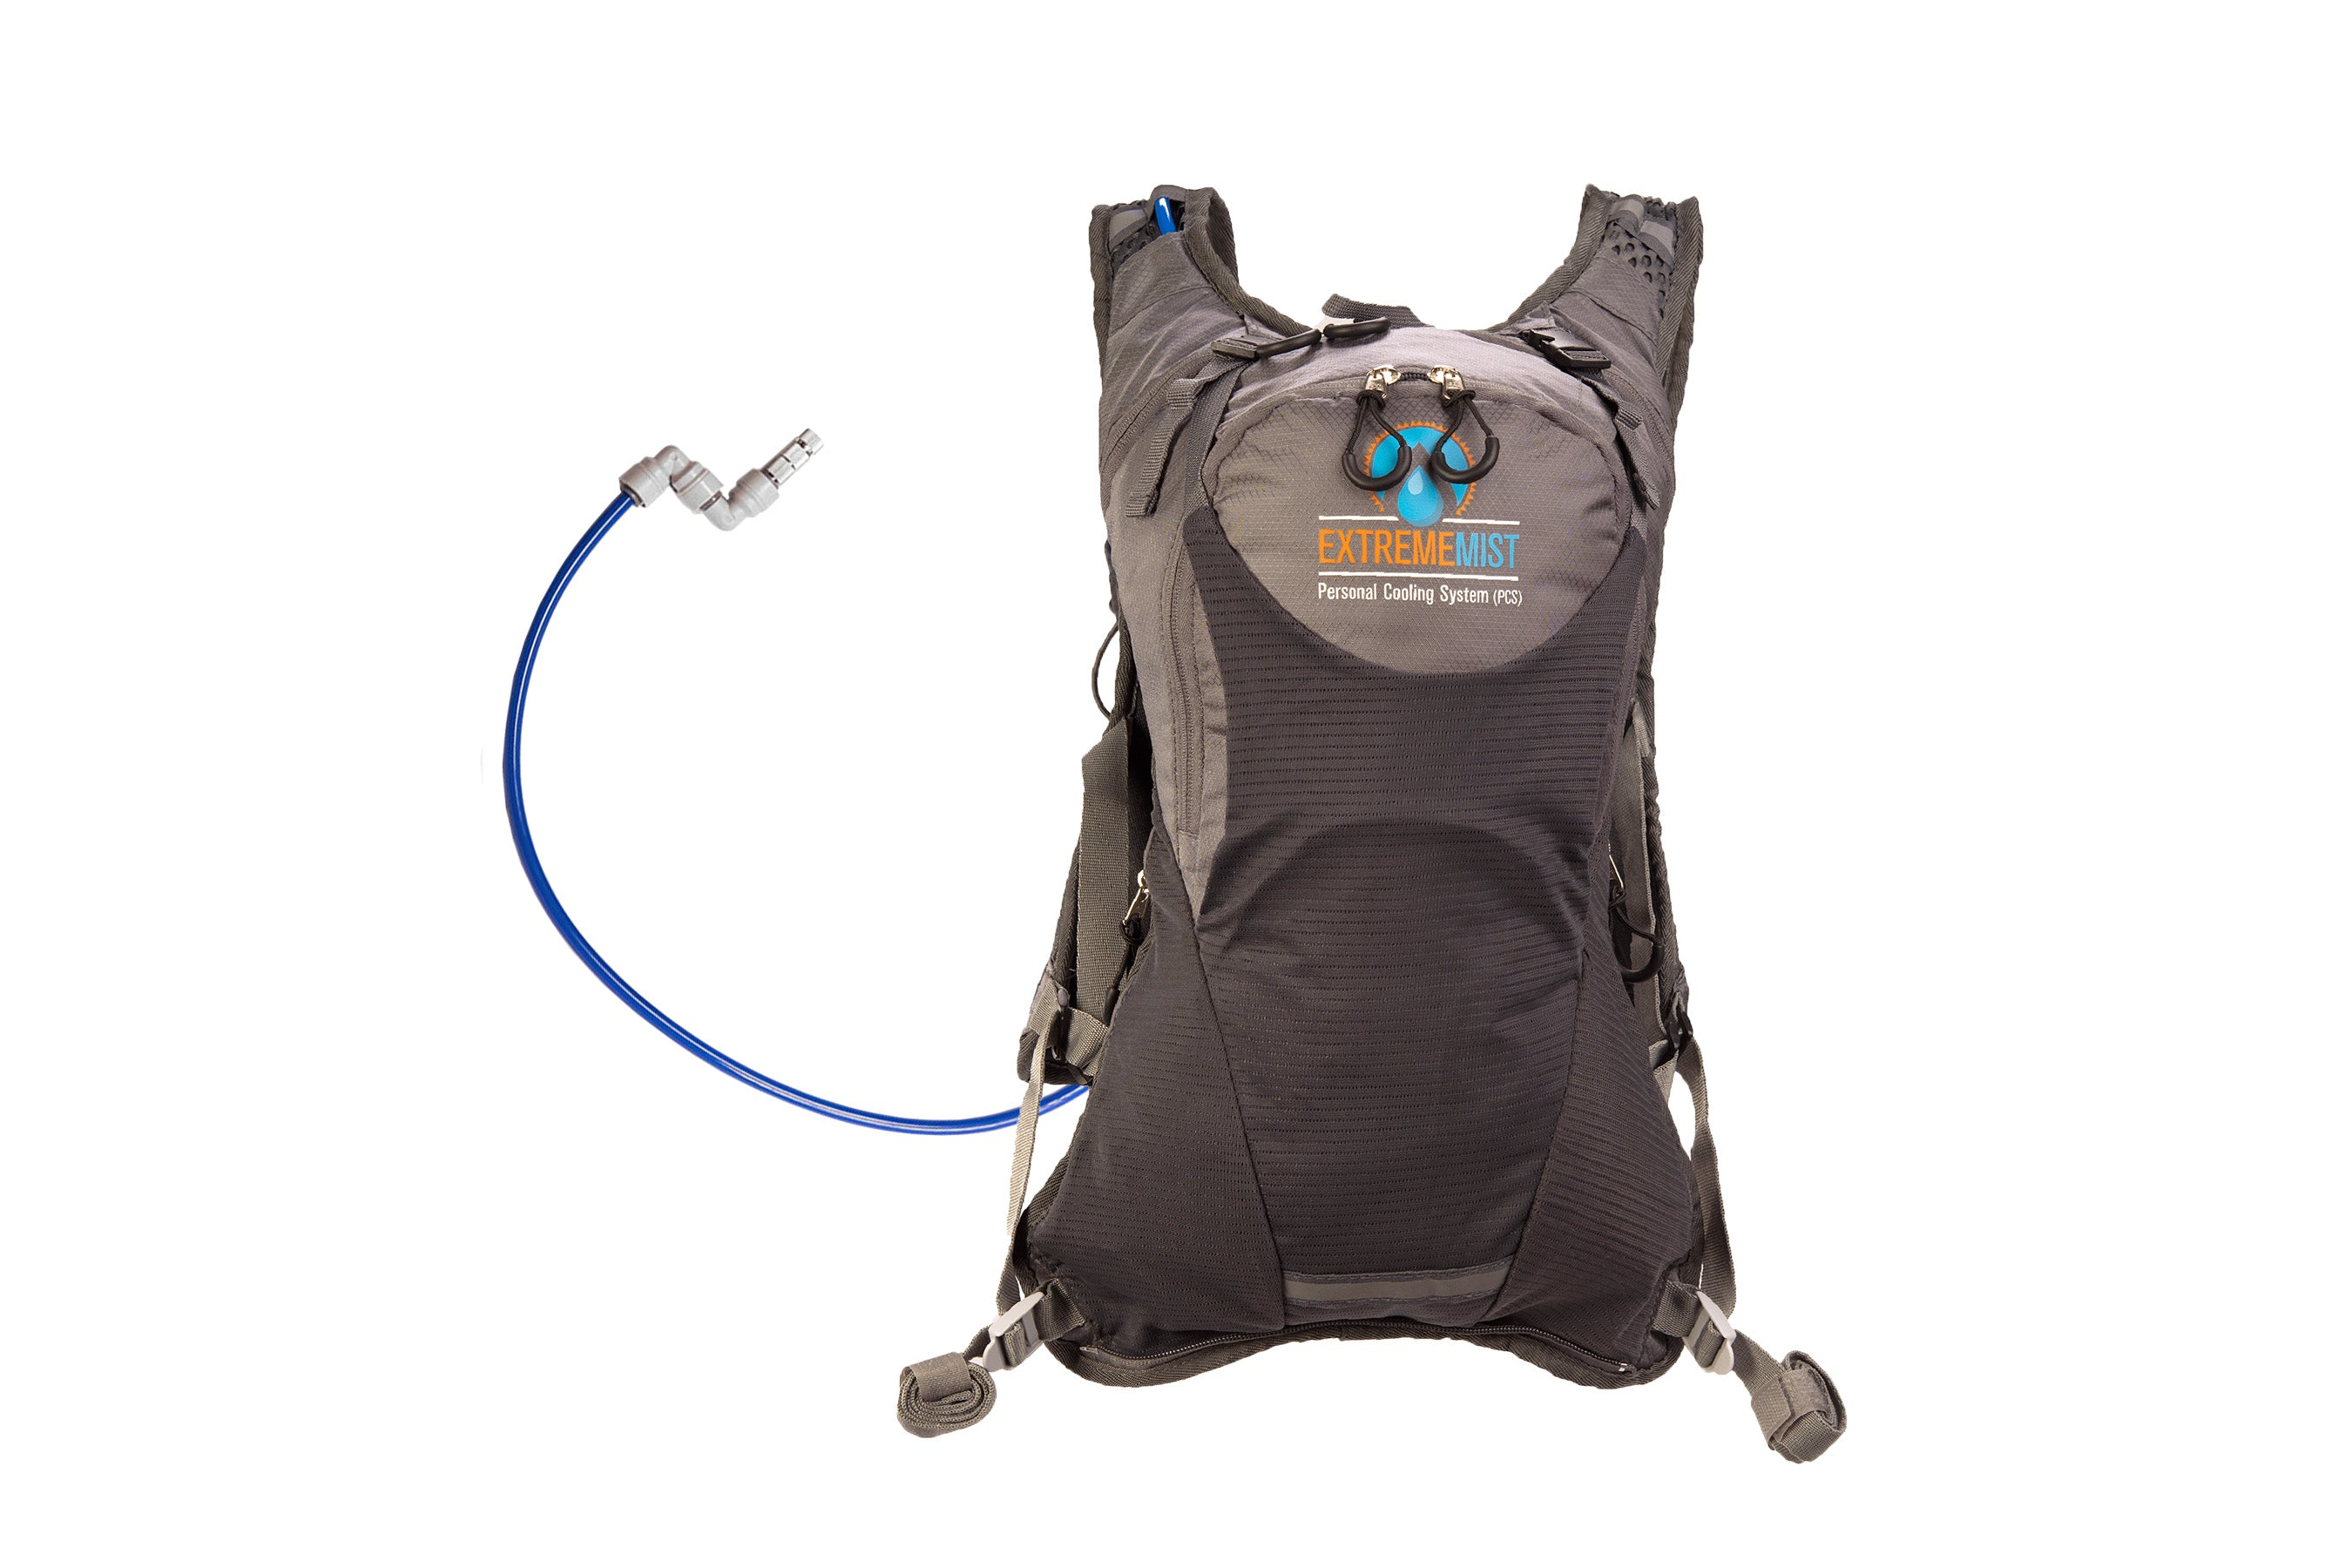 Portable Sanitizing System Backpack